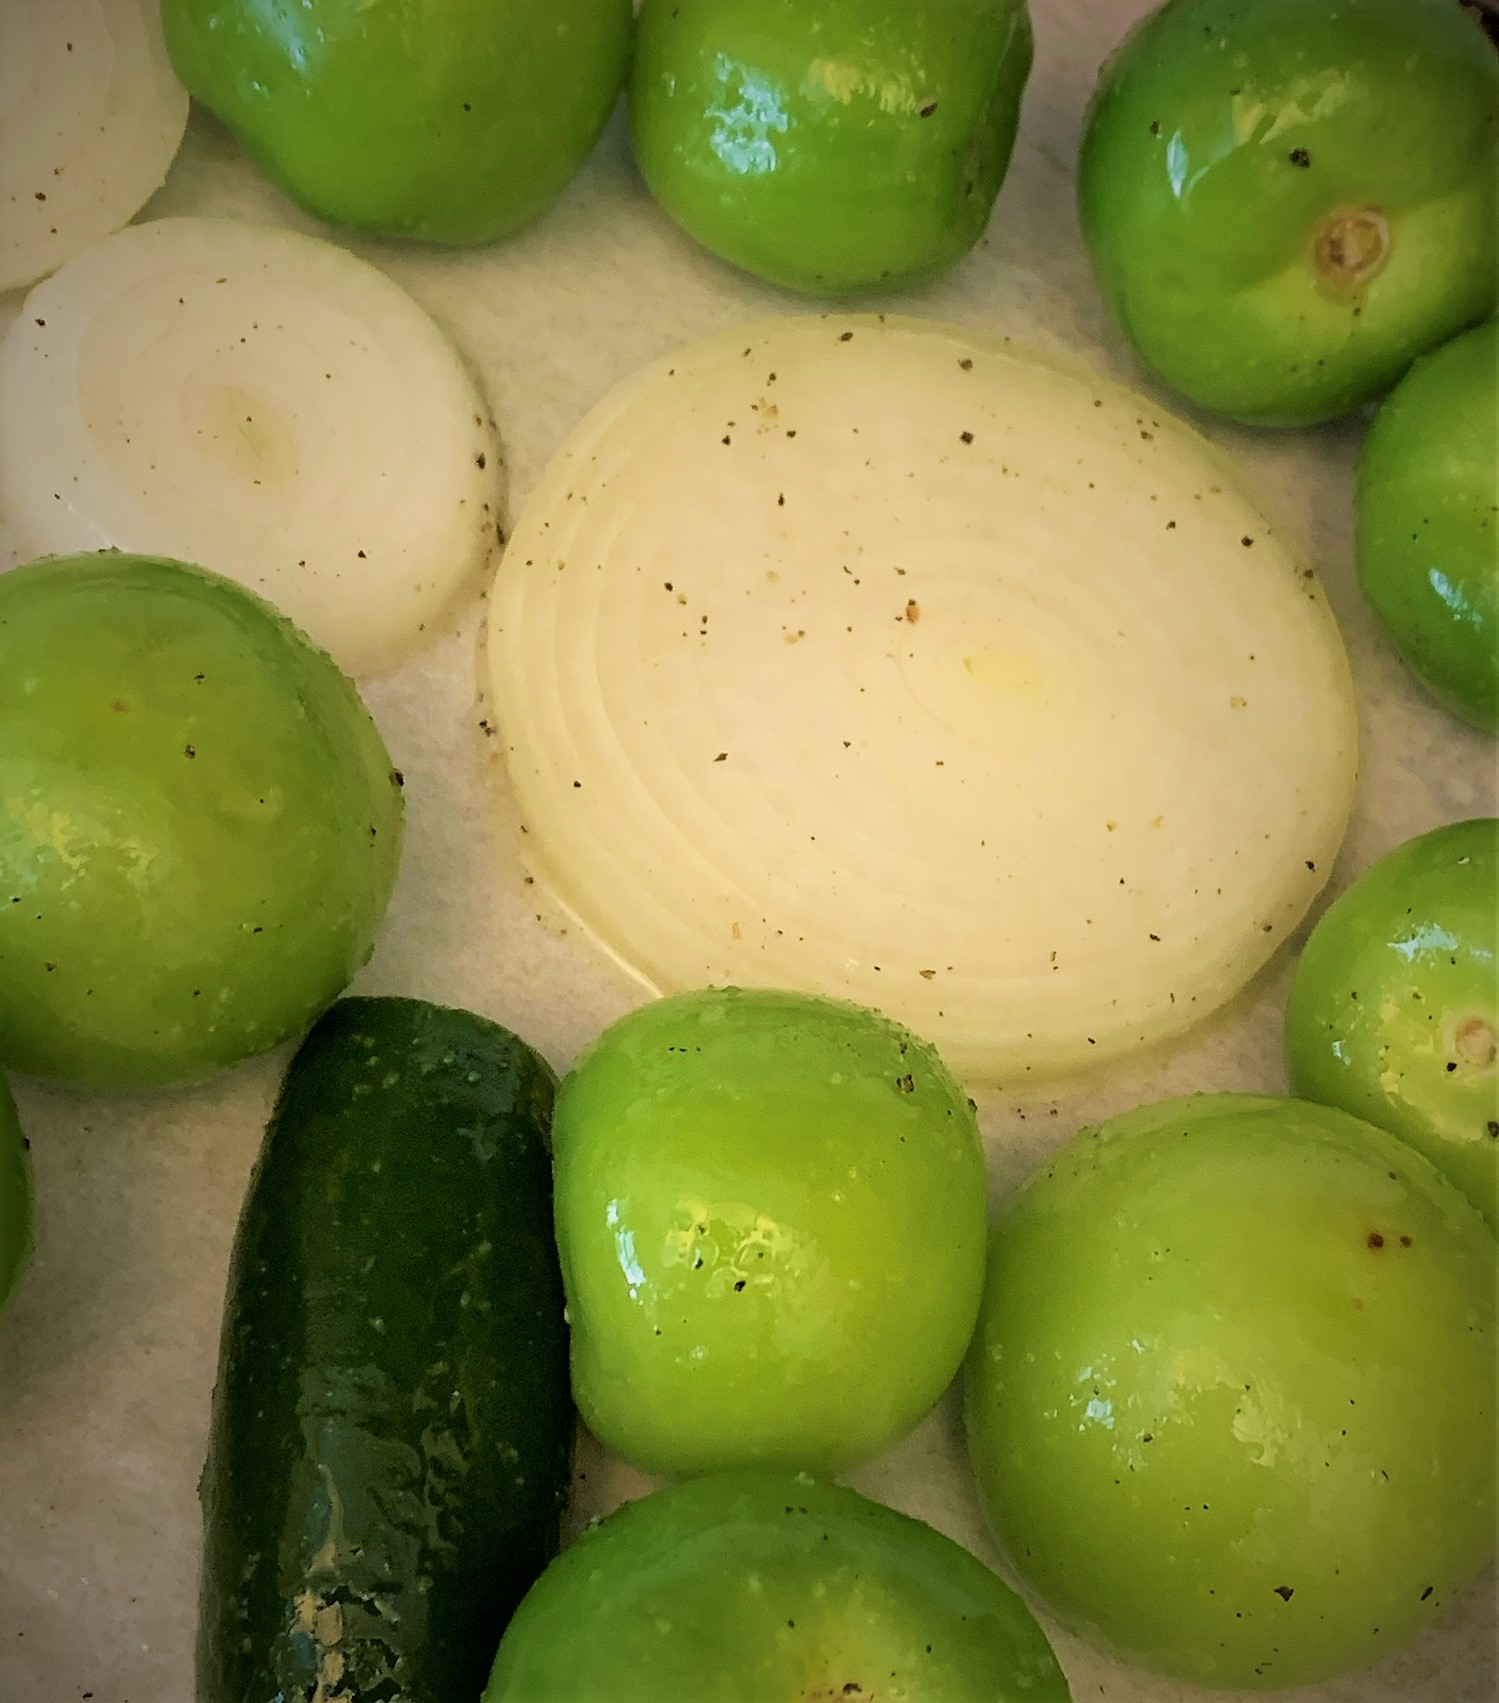 Our prepared Tomatillos, Onions and Jalapenos ready for roasting